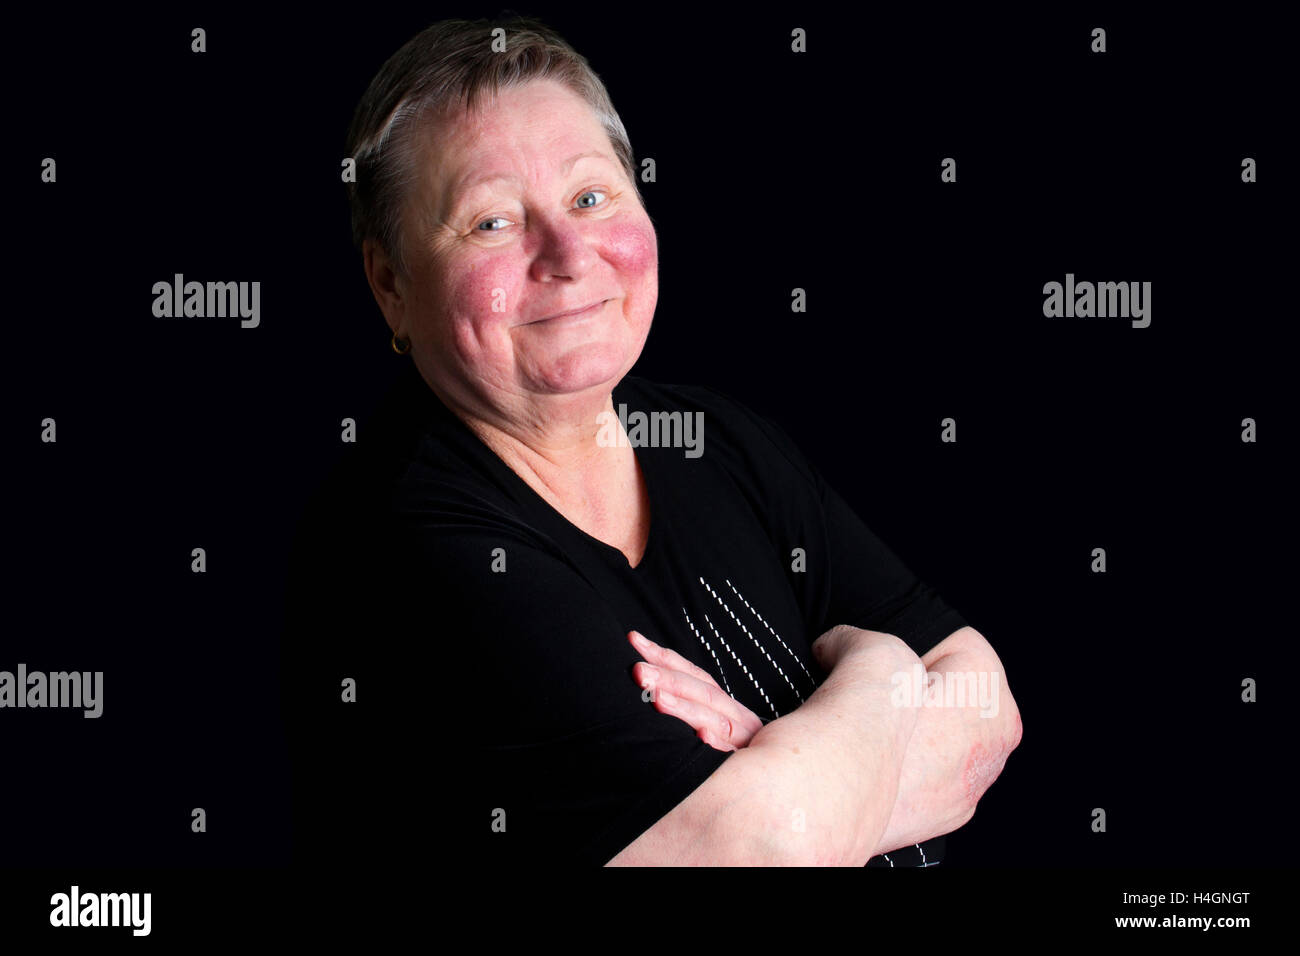 Portrait of happy and smiling senior woman in photo studio isolated on black background Stock Photo